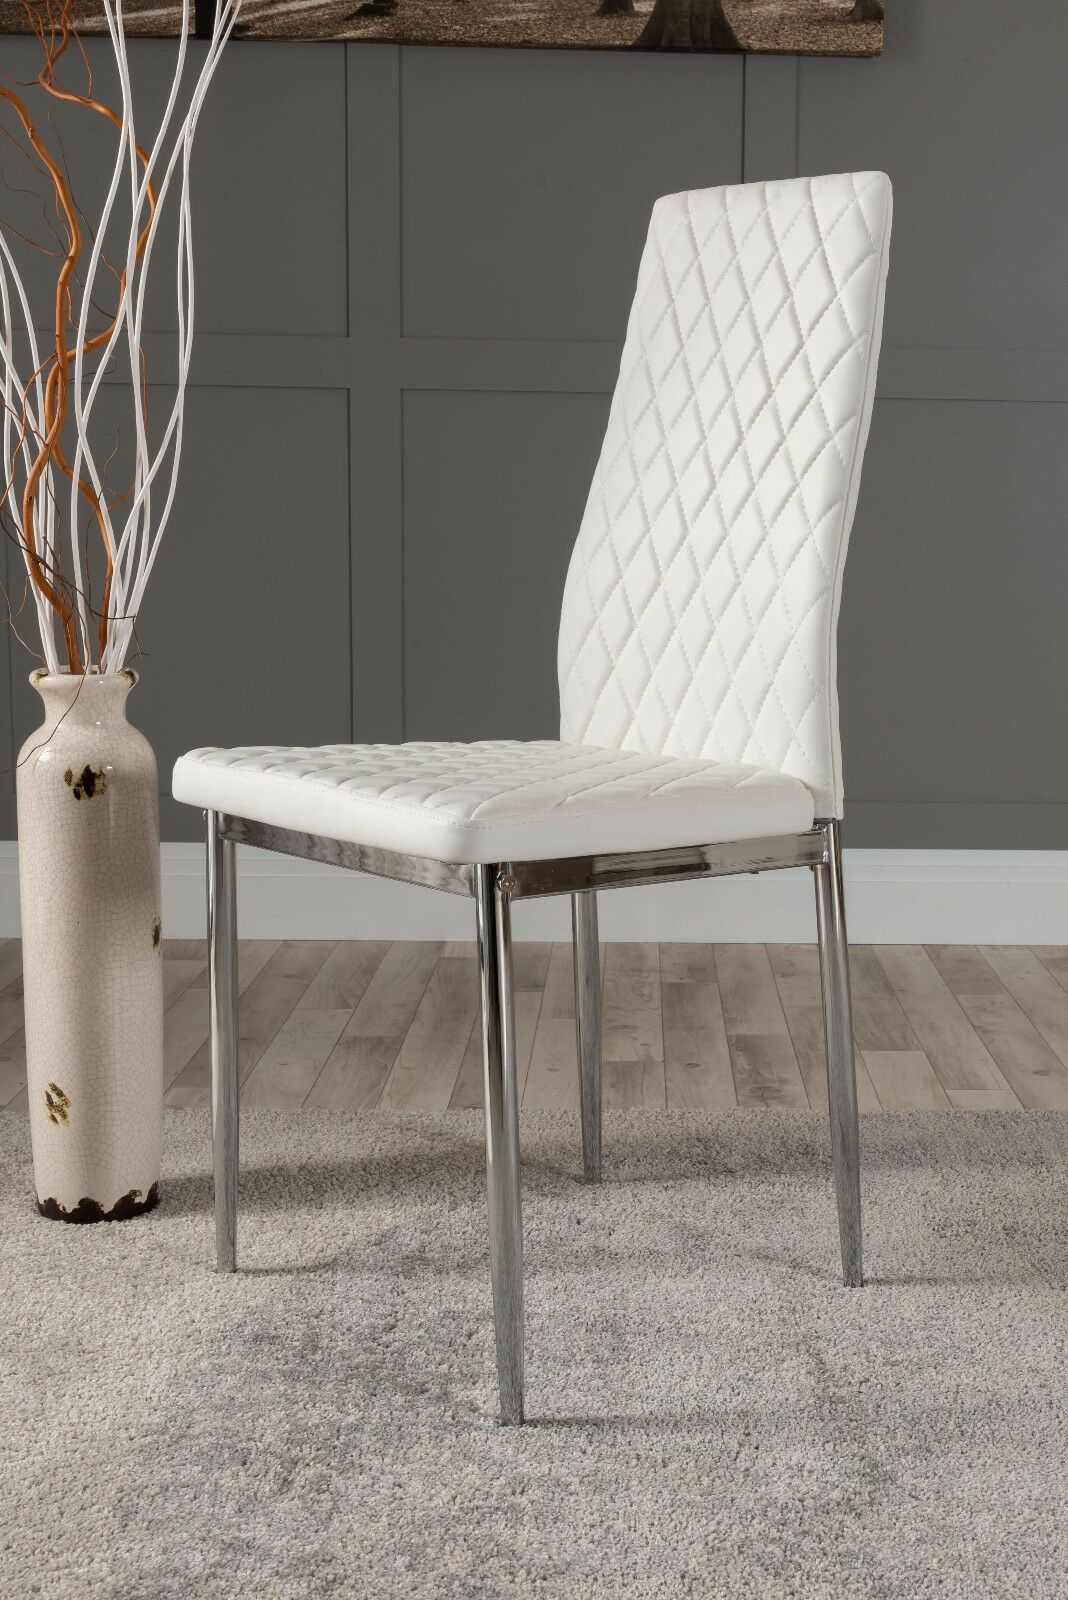 4x Milan Chrome Hatched White Faux Leather Dining Chairs Metal Legs